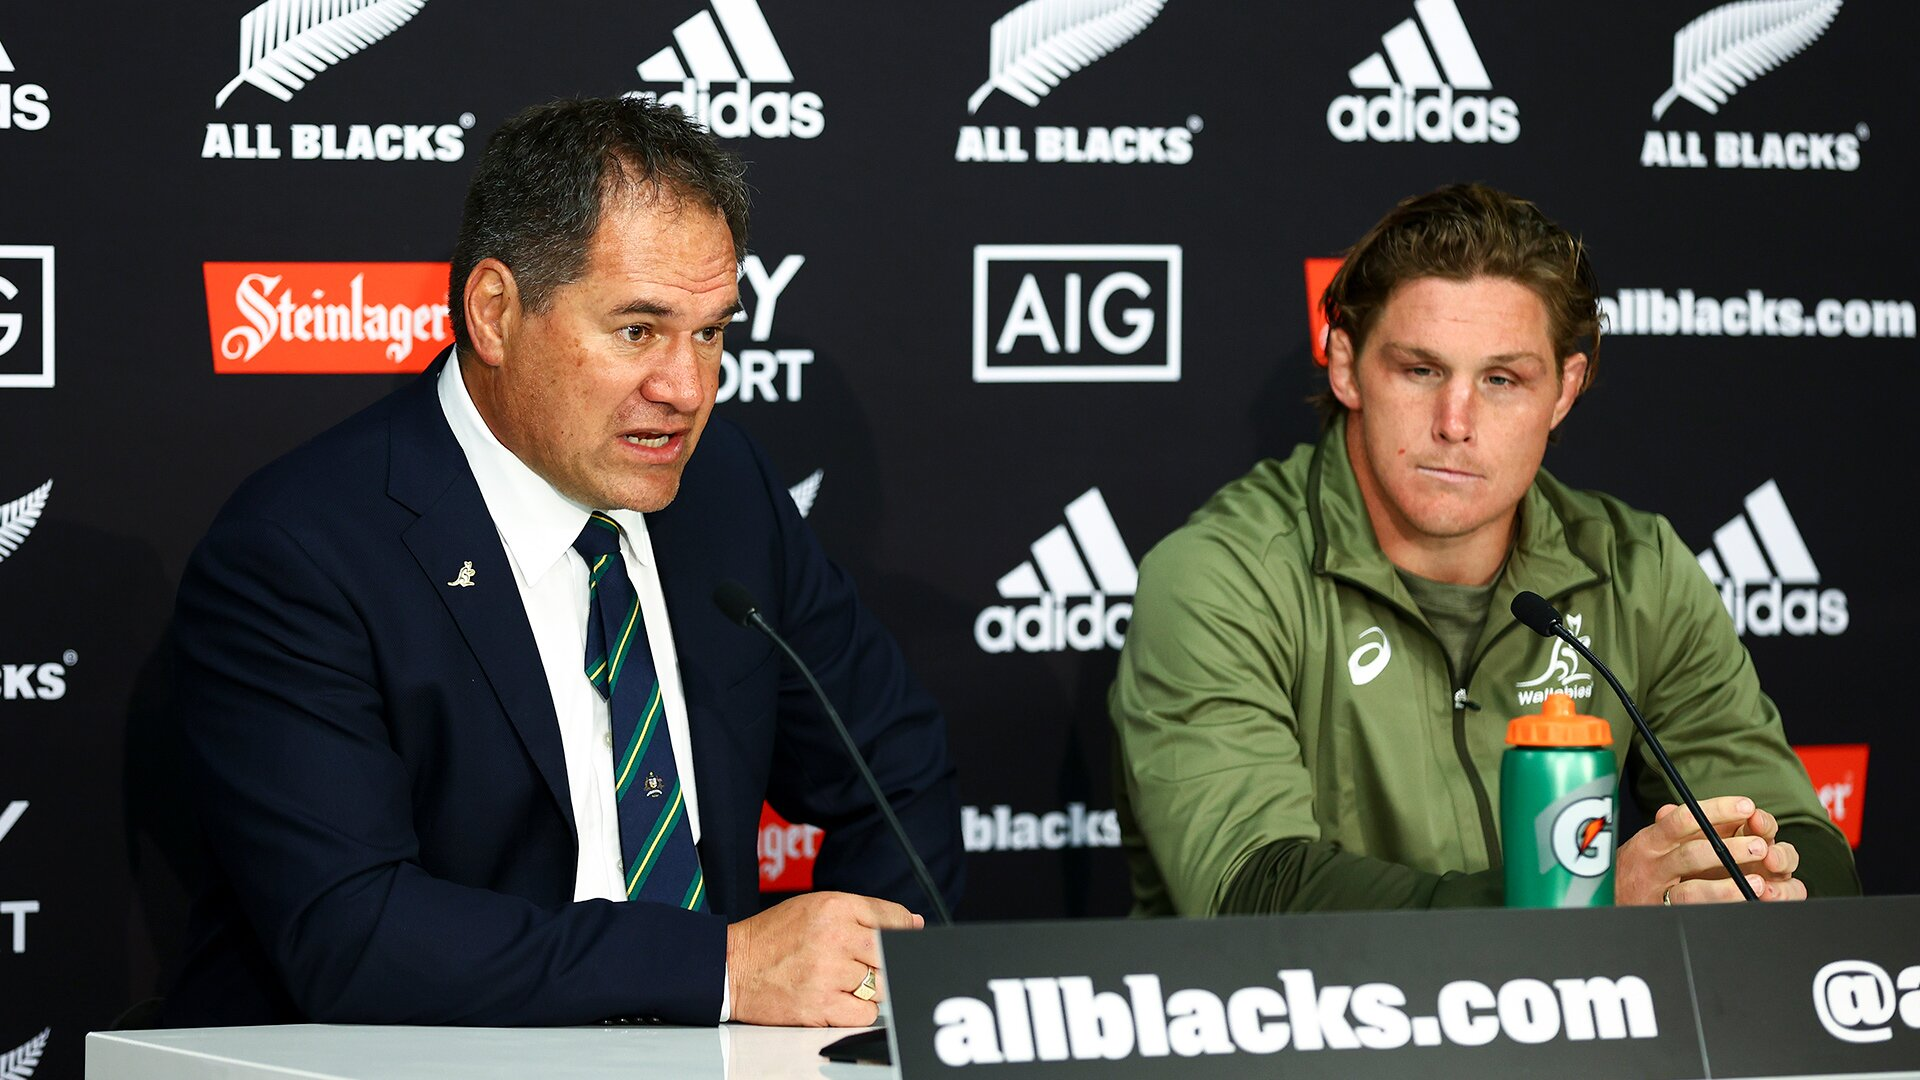 'It's got to be how we back up': Rennie wants more from Wallabies following famous draw